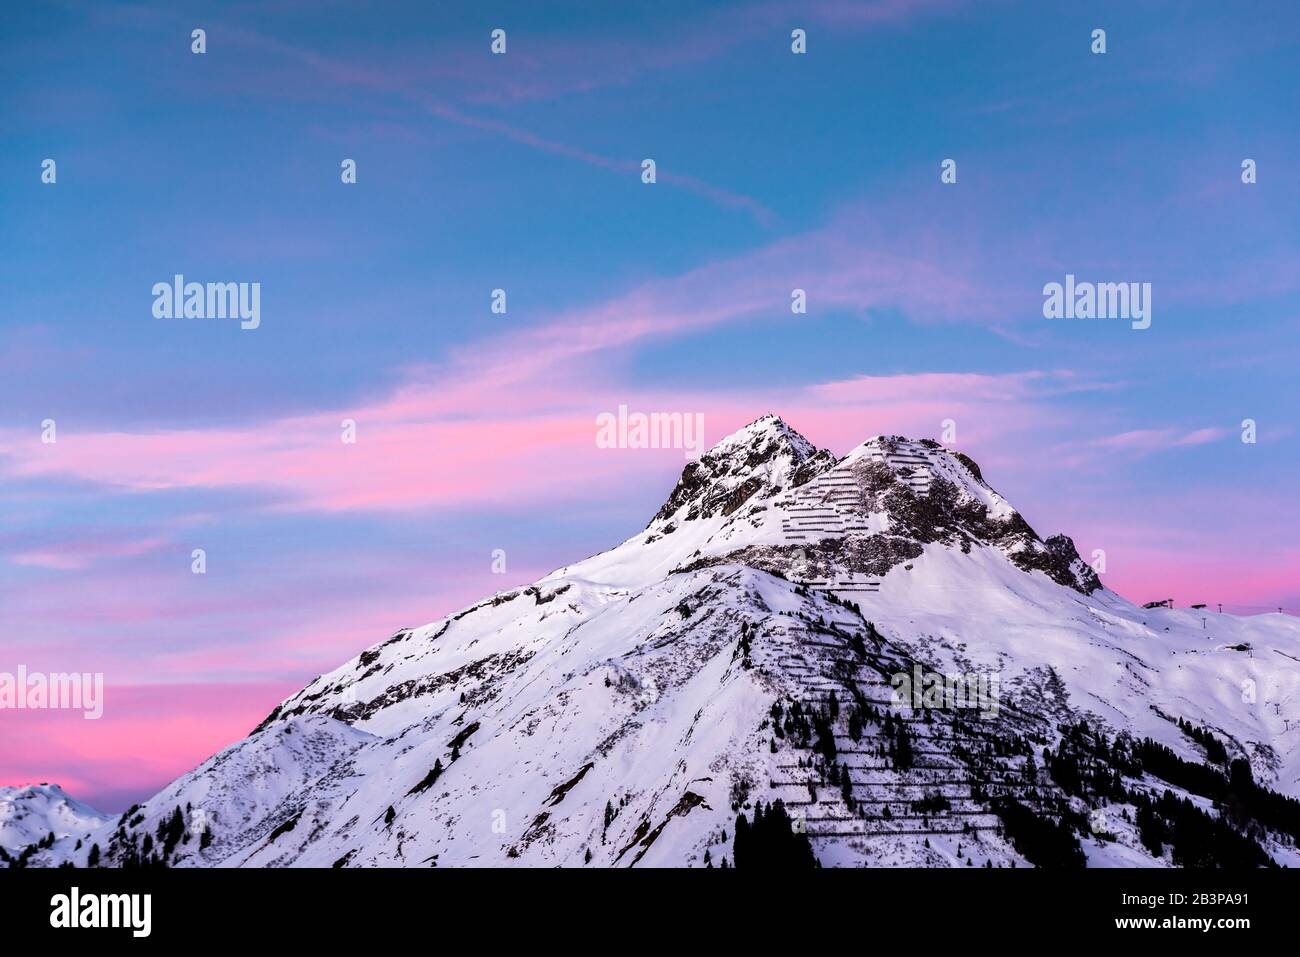 Pink clouds lie in a blue sky above a snowy alpine mountain peak. Stock Photo